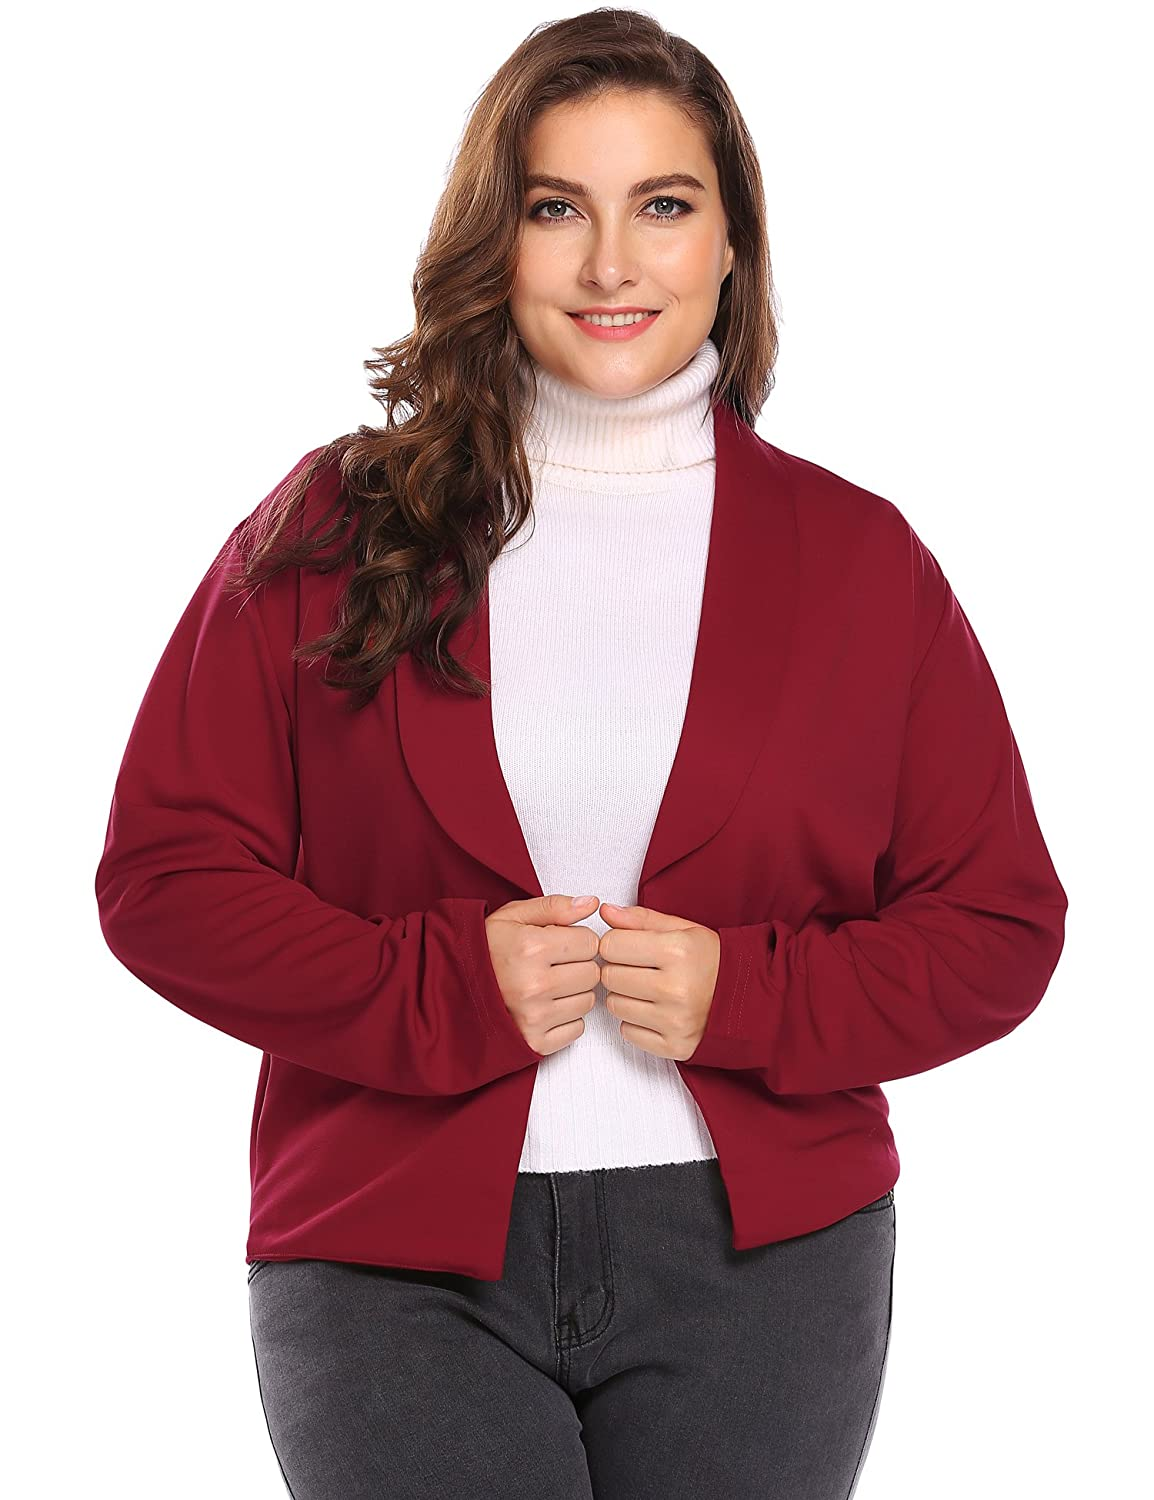 IN'VOLAND Womens Classic 3/4 Sleeve Knit Open Front Cropped Cardigan INH022736